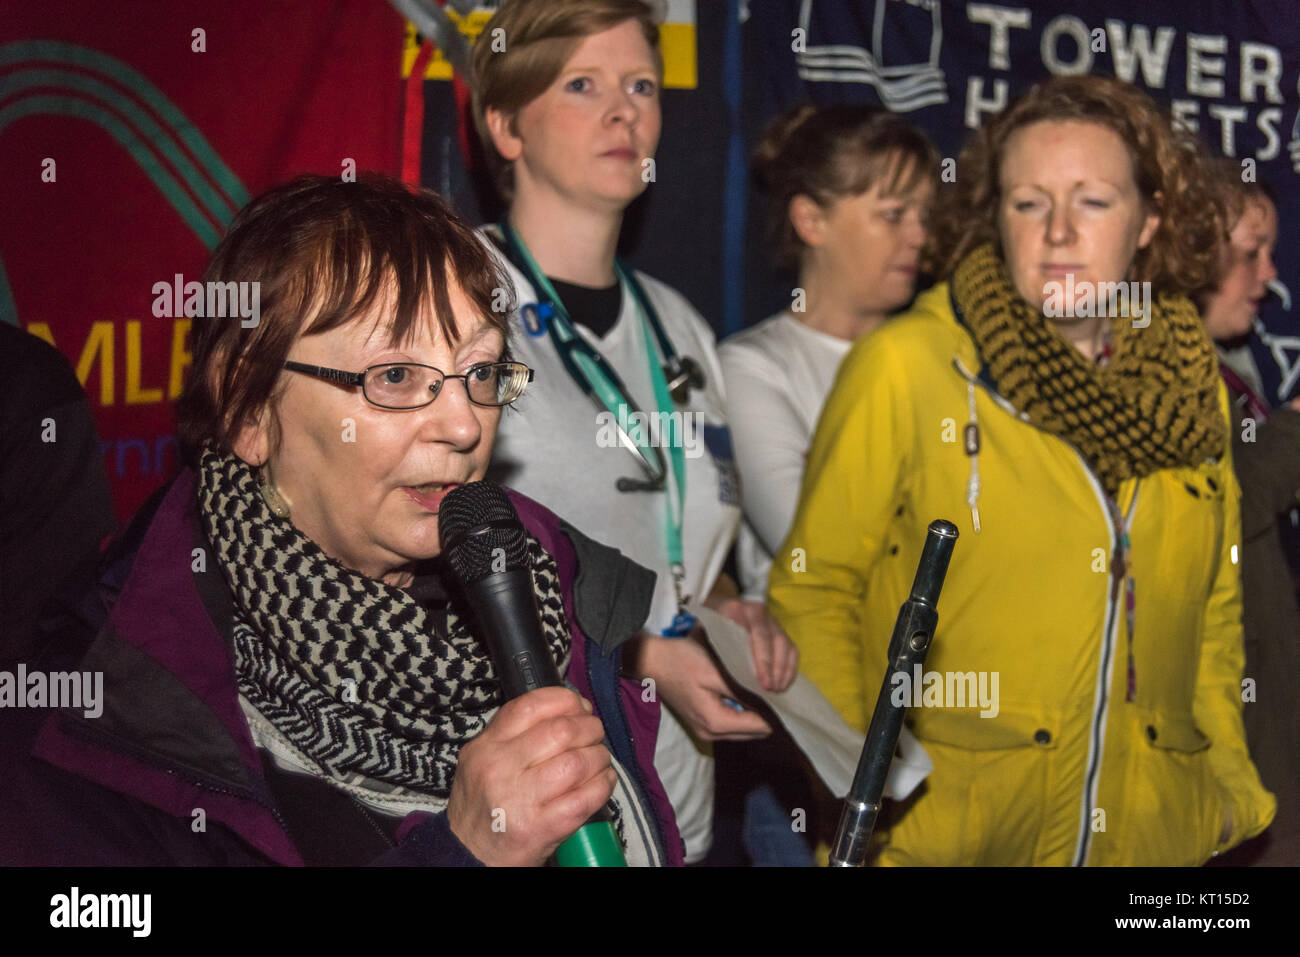 Maggie Falshaw, one of the organisers of the 'Save Our Surgeries' campaign speaks at the Christmas protest - Stock Image